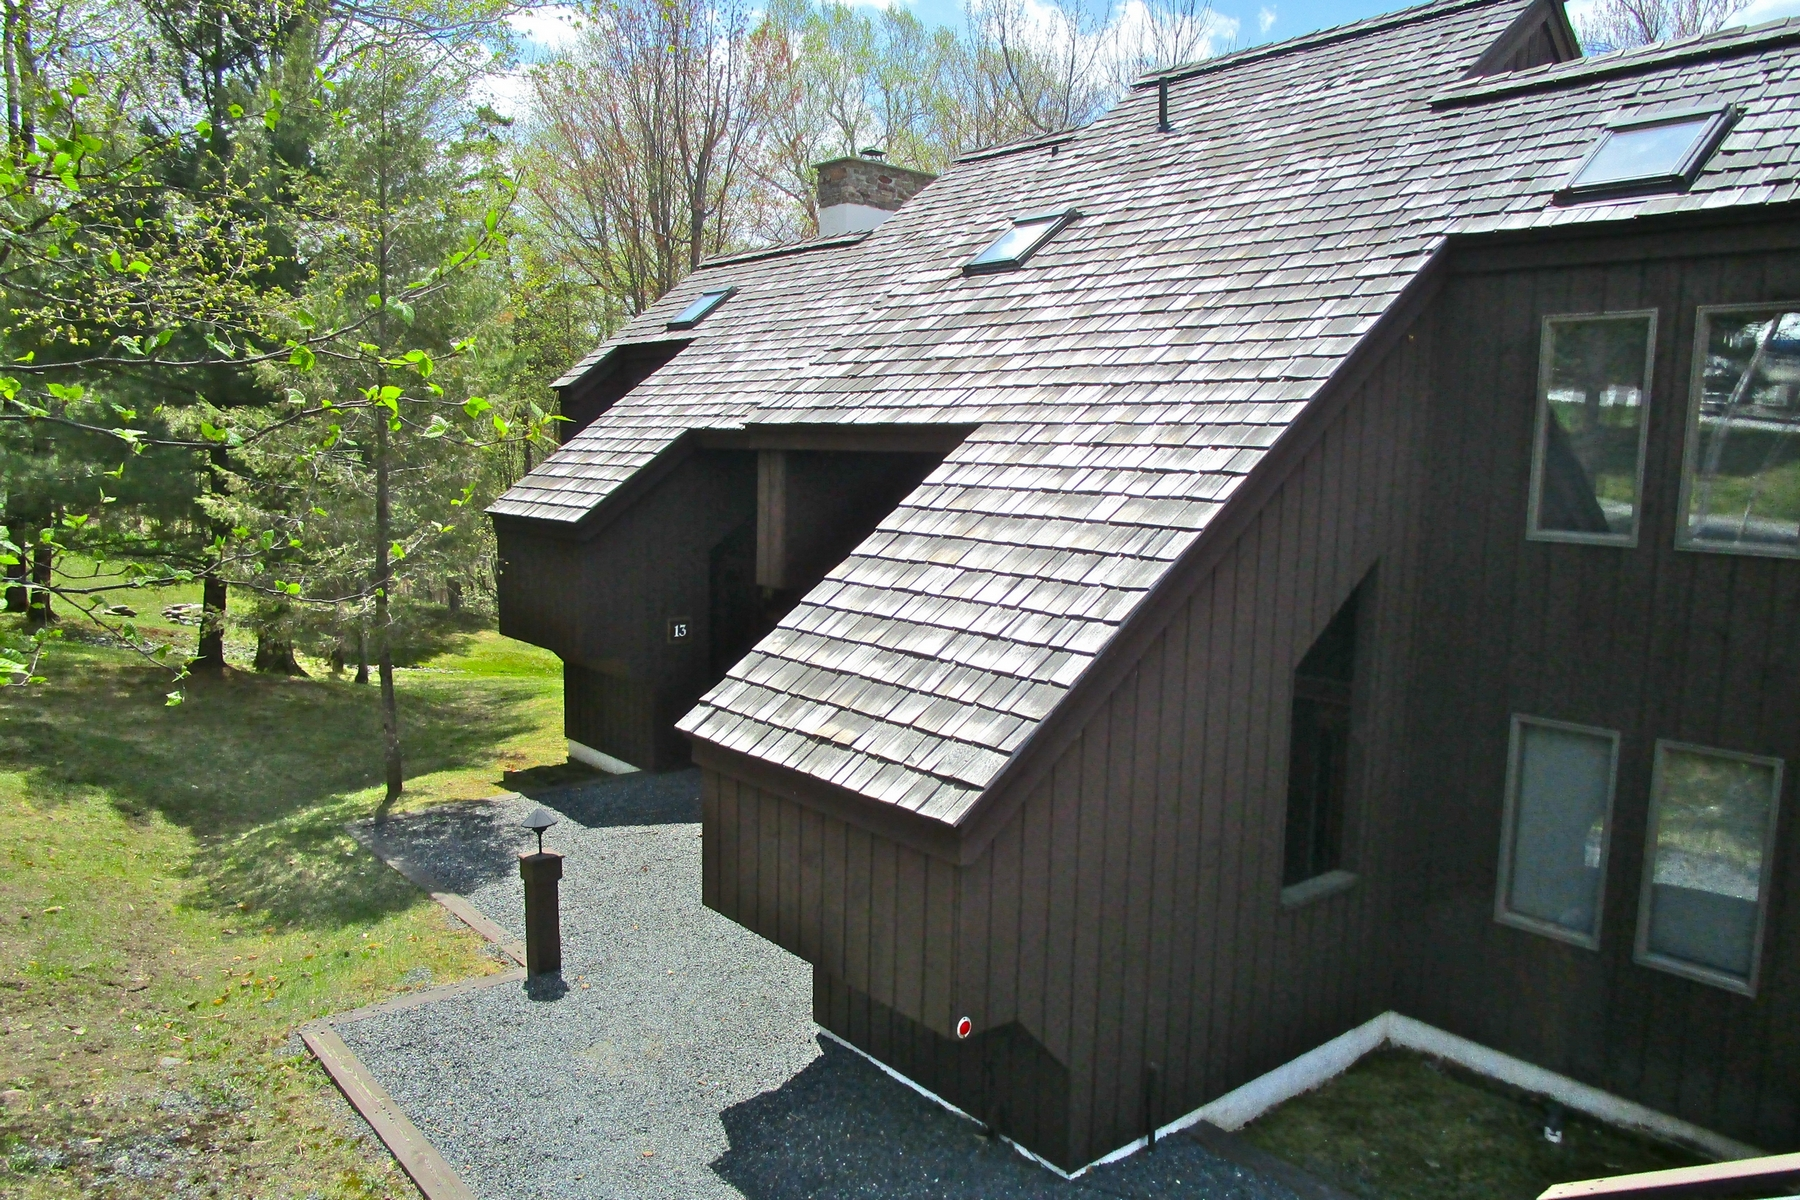 شقة بعمارة للـ Sale في Rare 5-bedroom, 4-bath townhouse at Hawk Resort. 894 East Ash 13, Plymouth, Vermont, 05056 United States